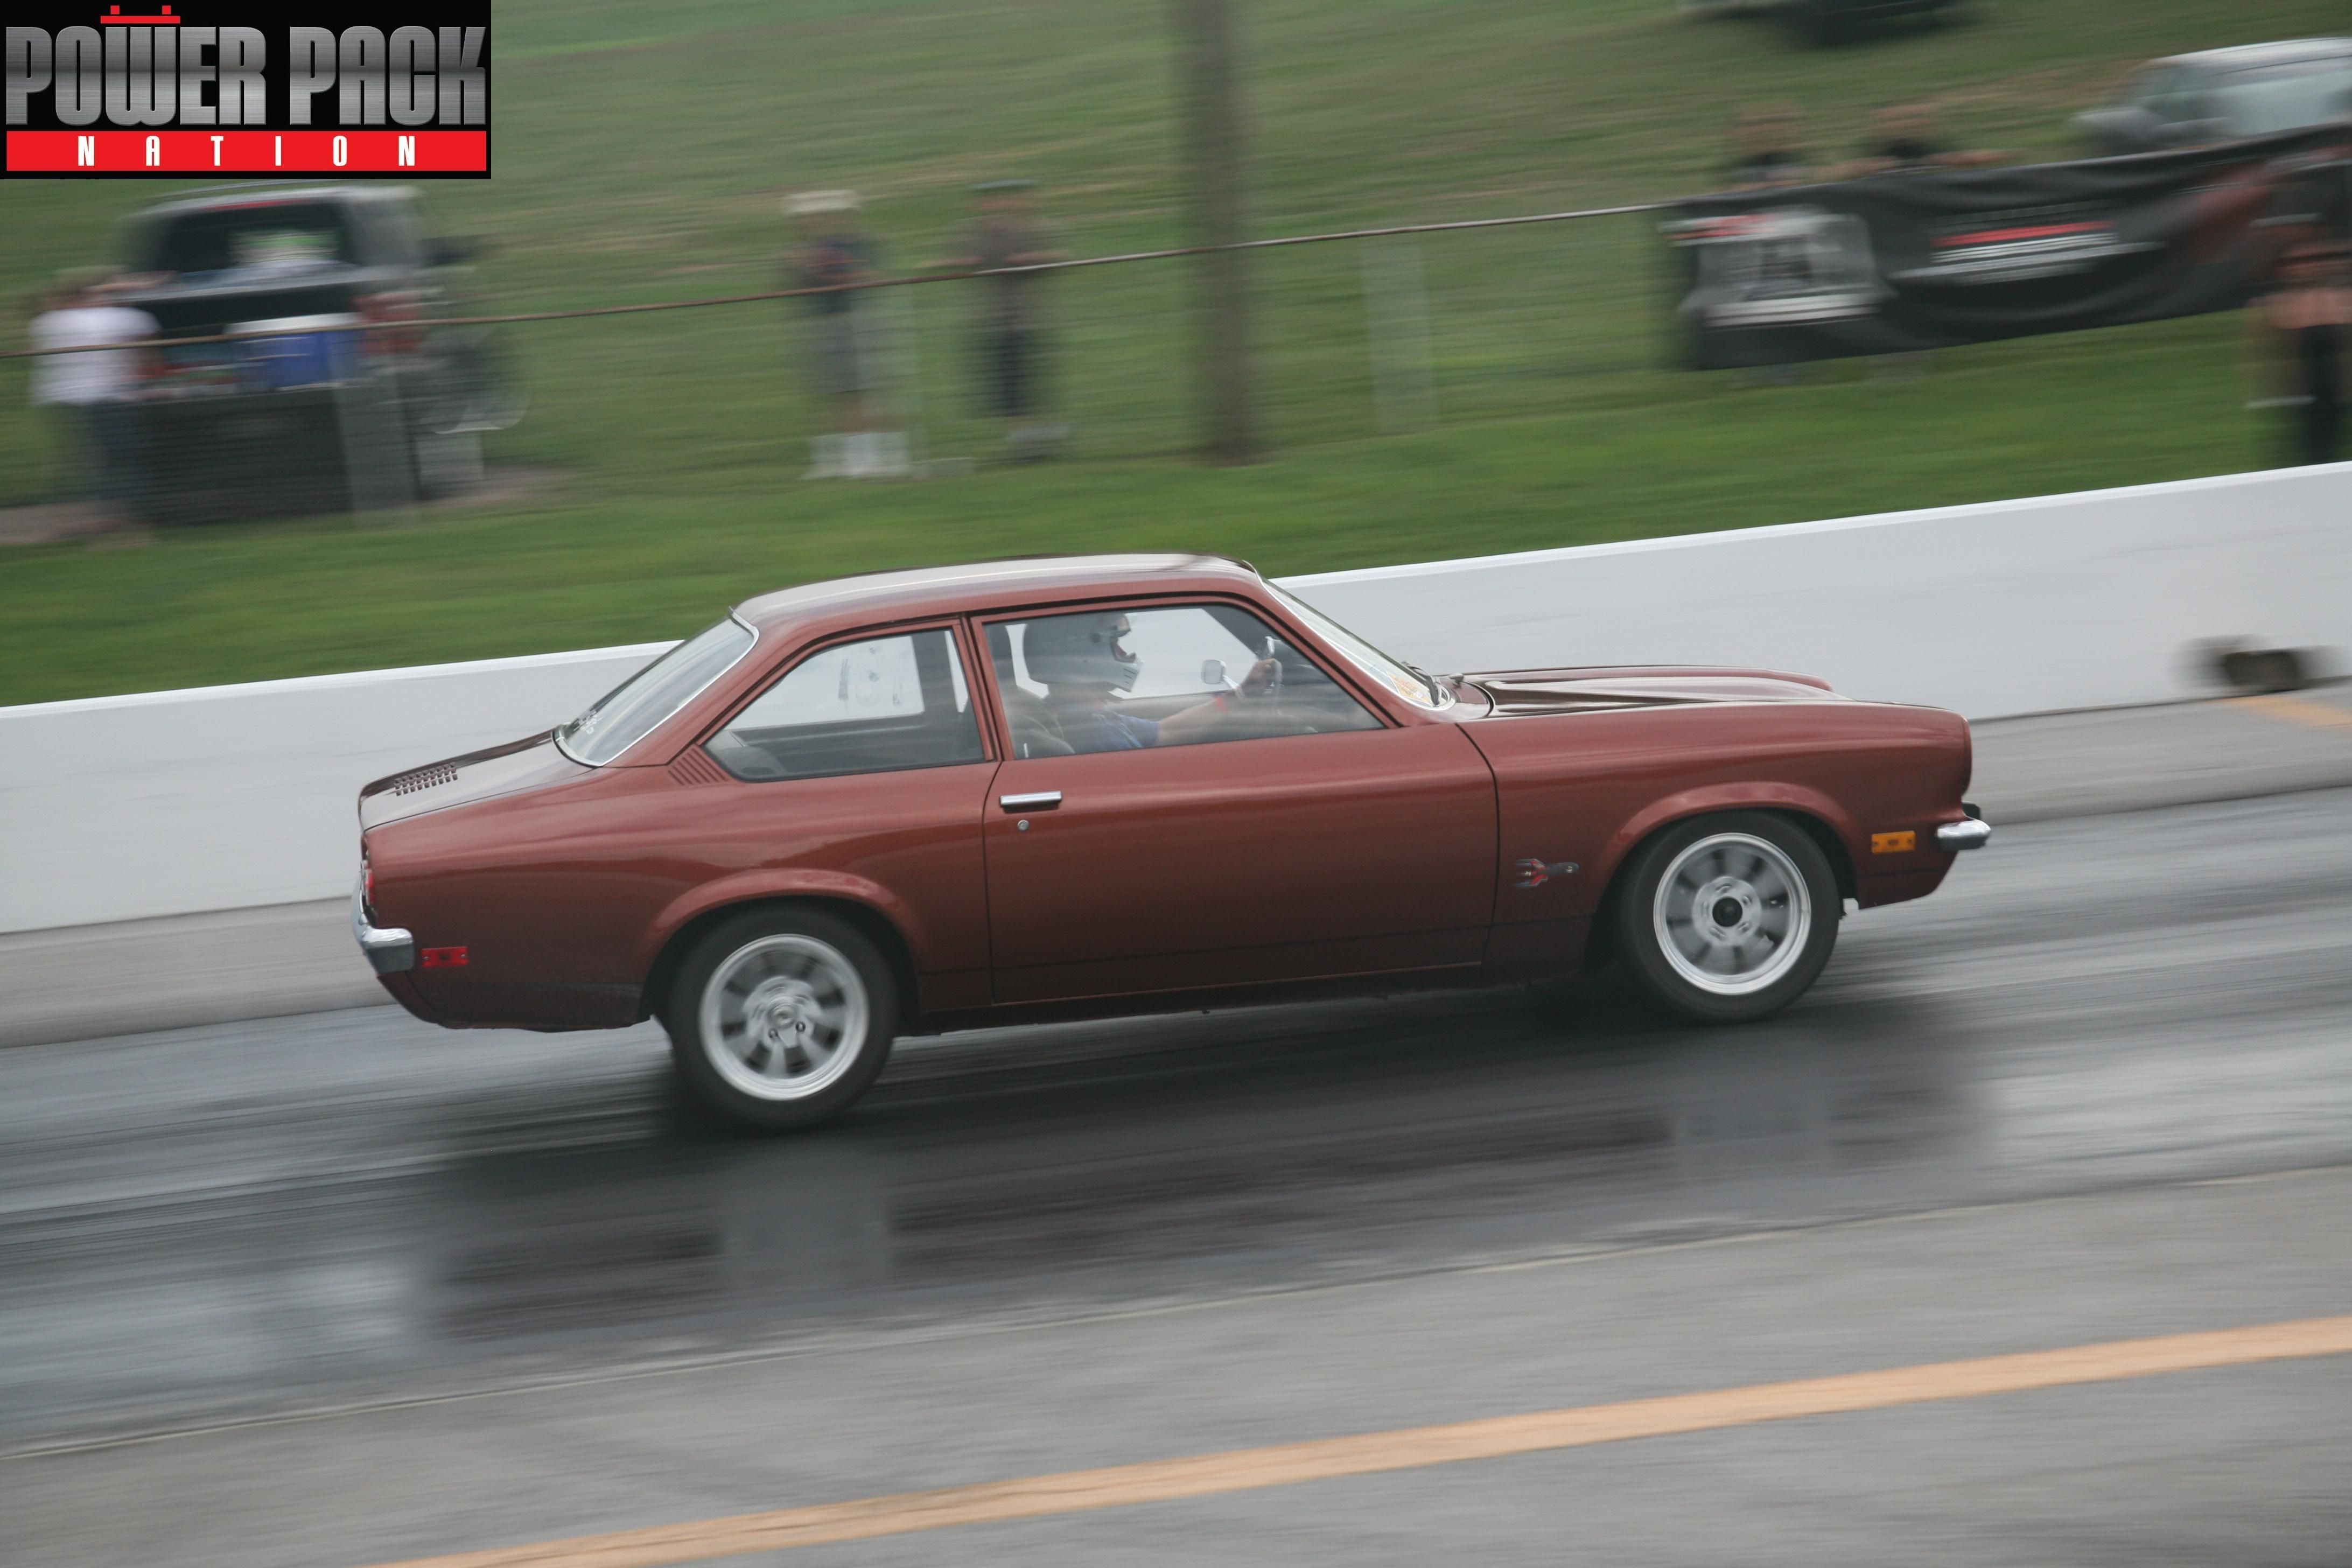 An LS-powered Chevy Vega from Schwartz Performance | Vroom Vroom ...